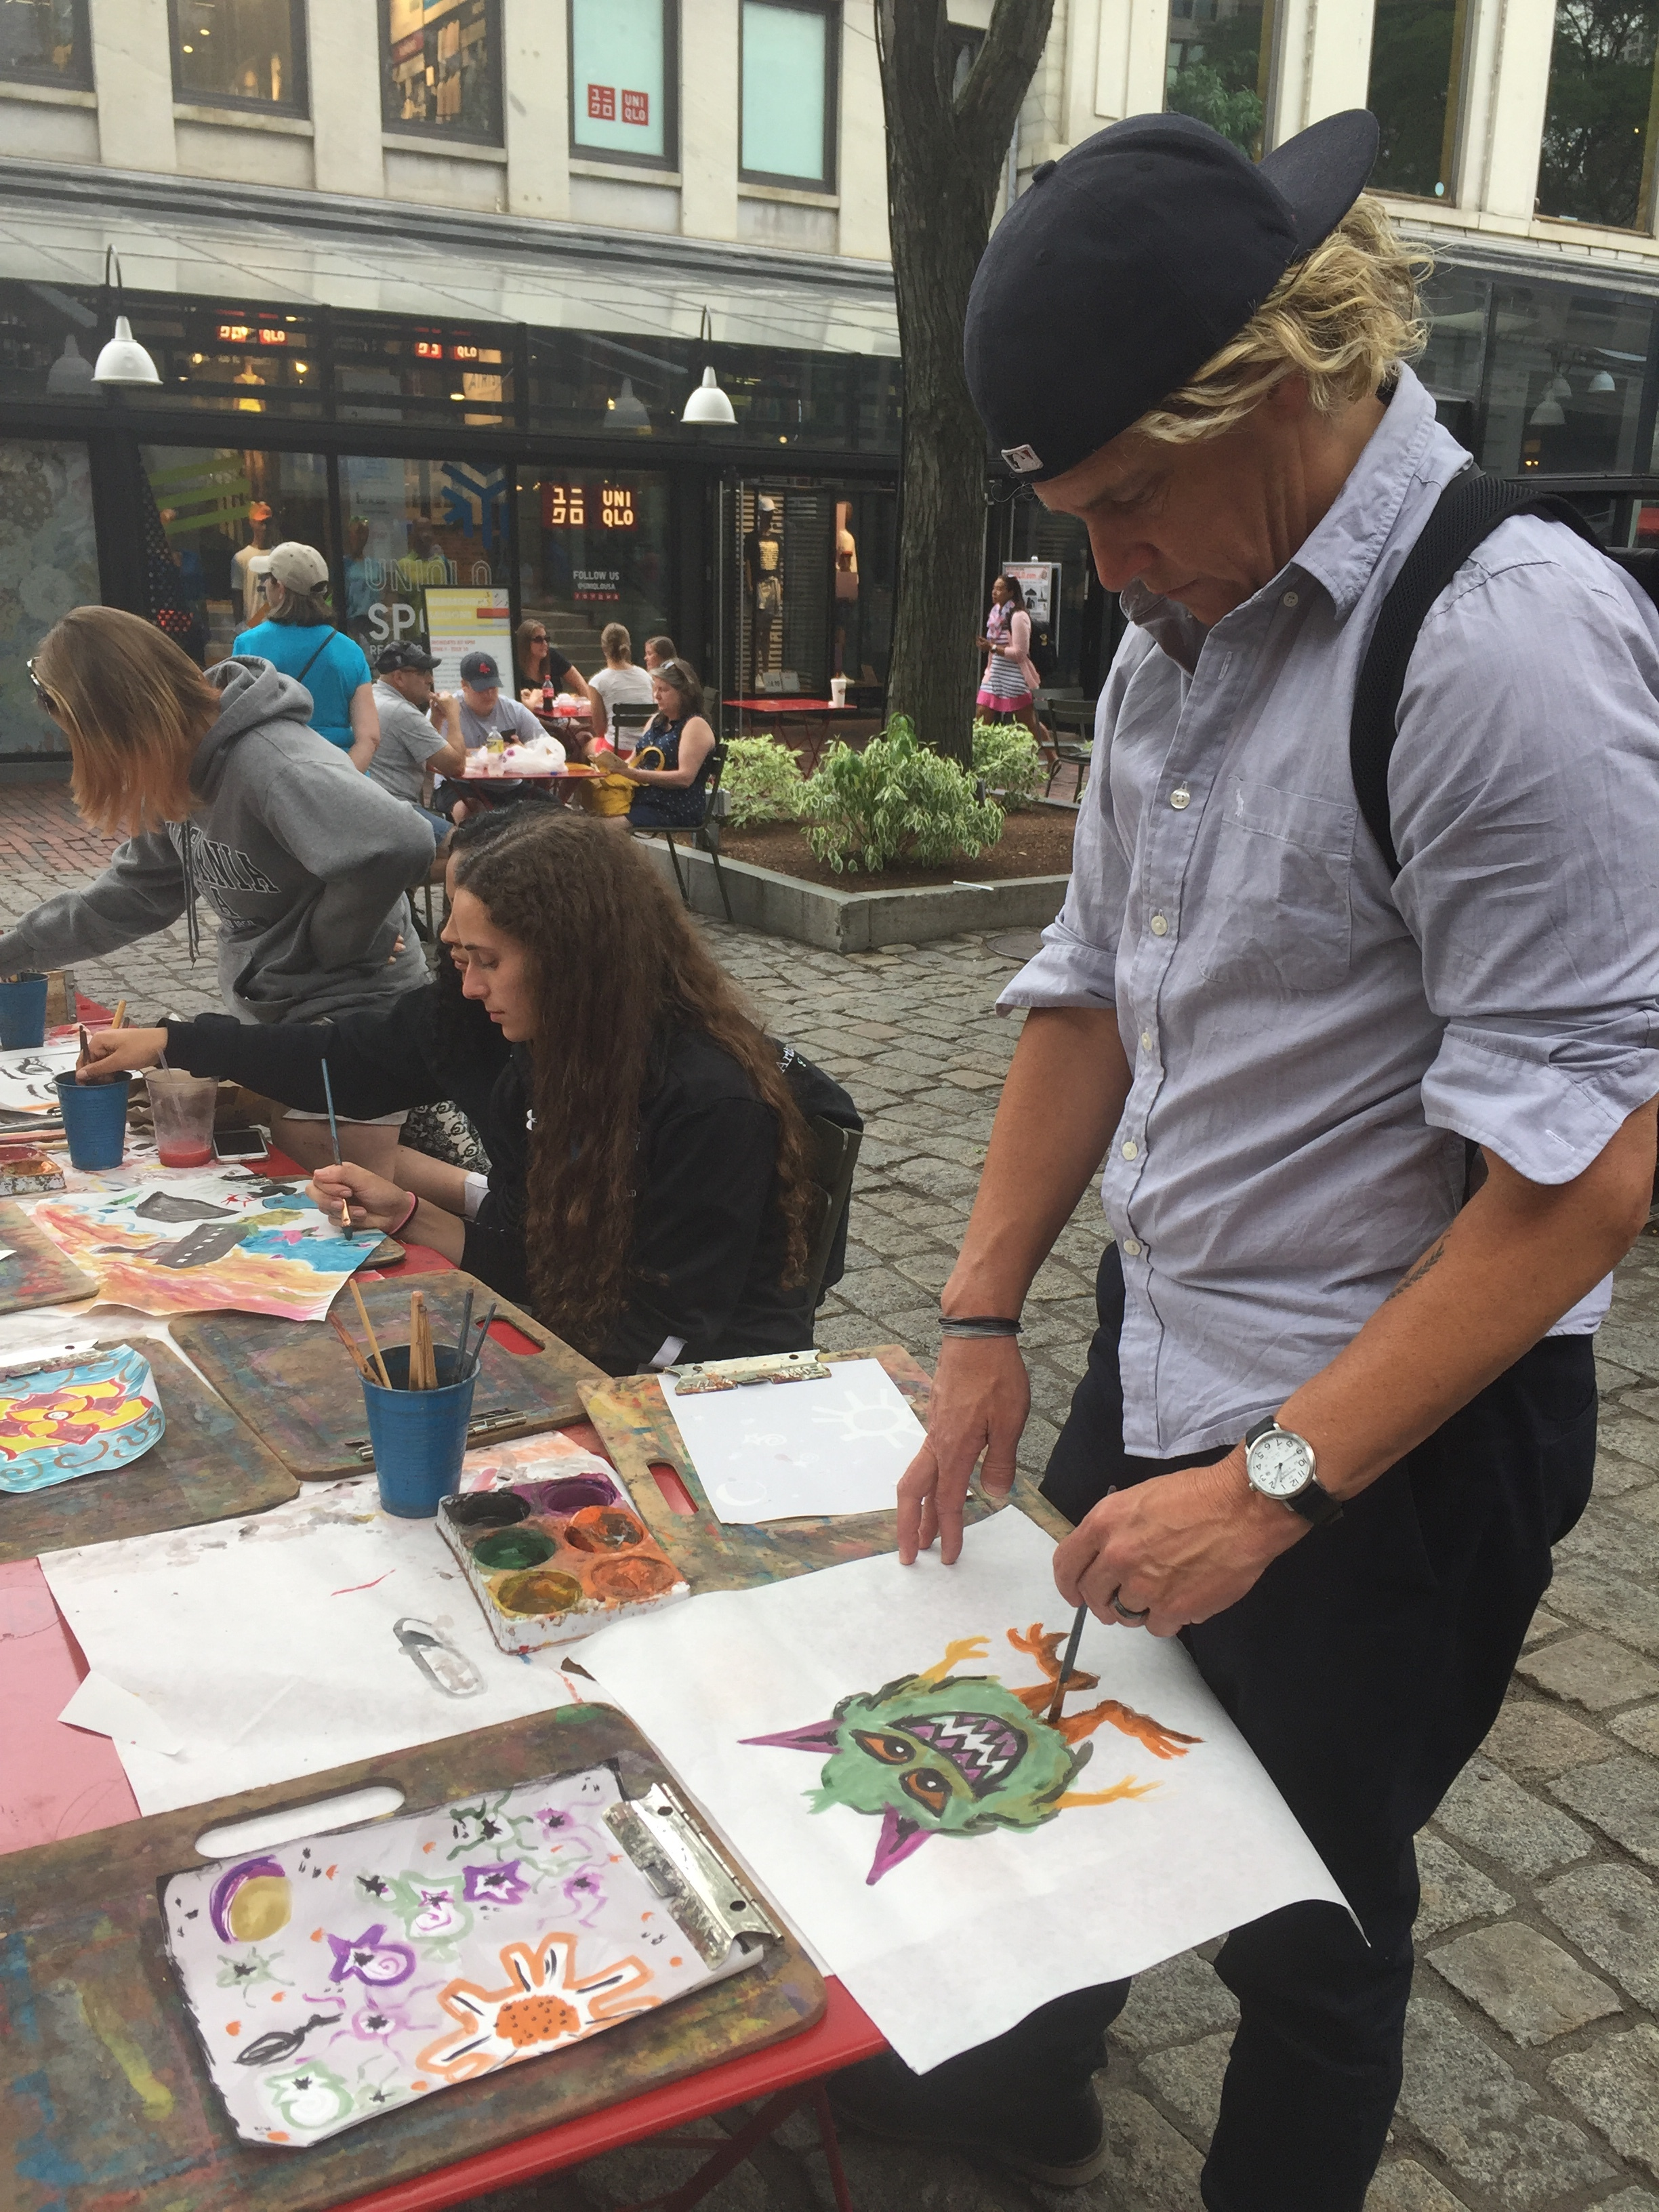 Kris painting Boston something special while at Quincy Market.